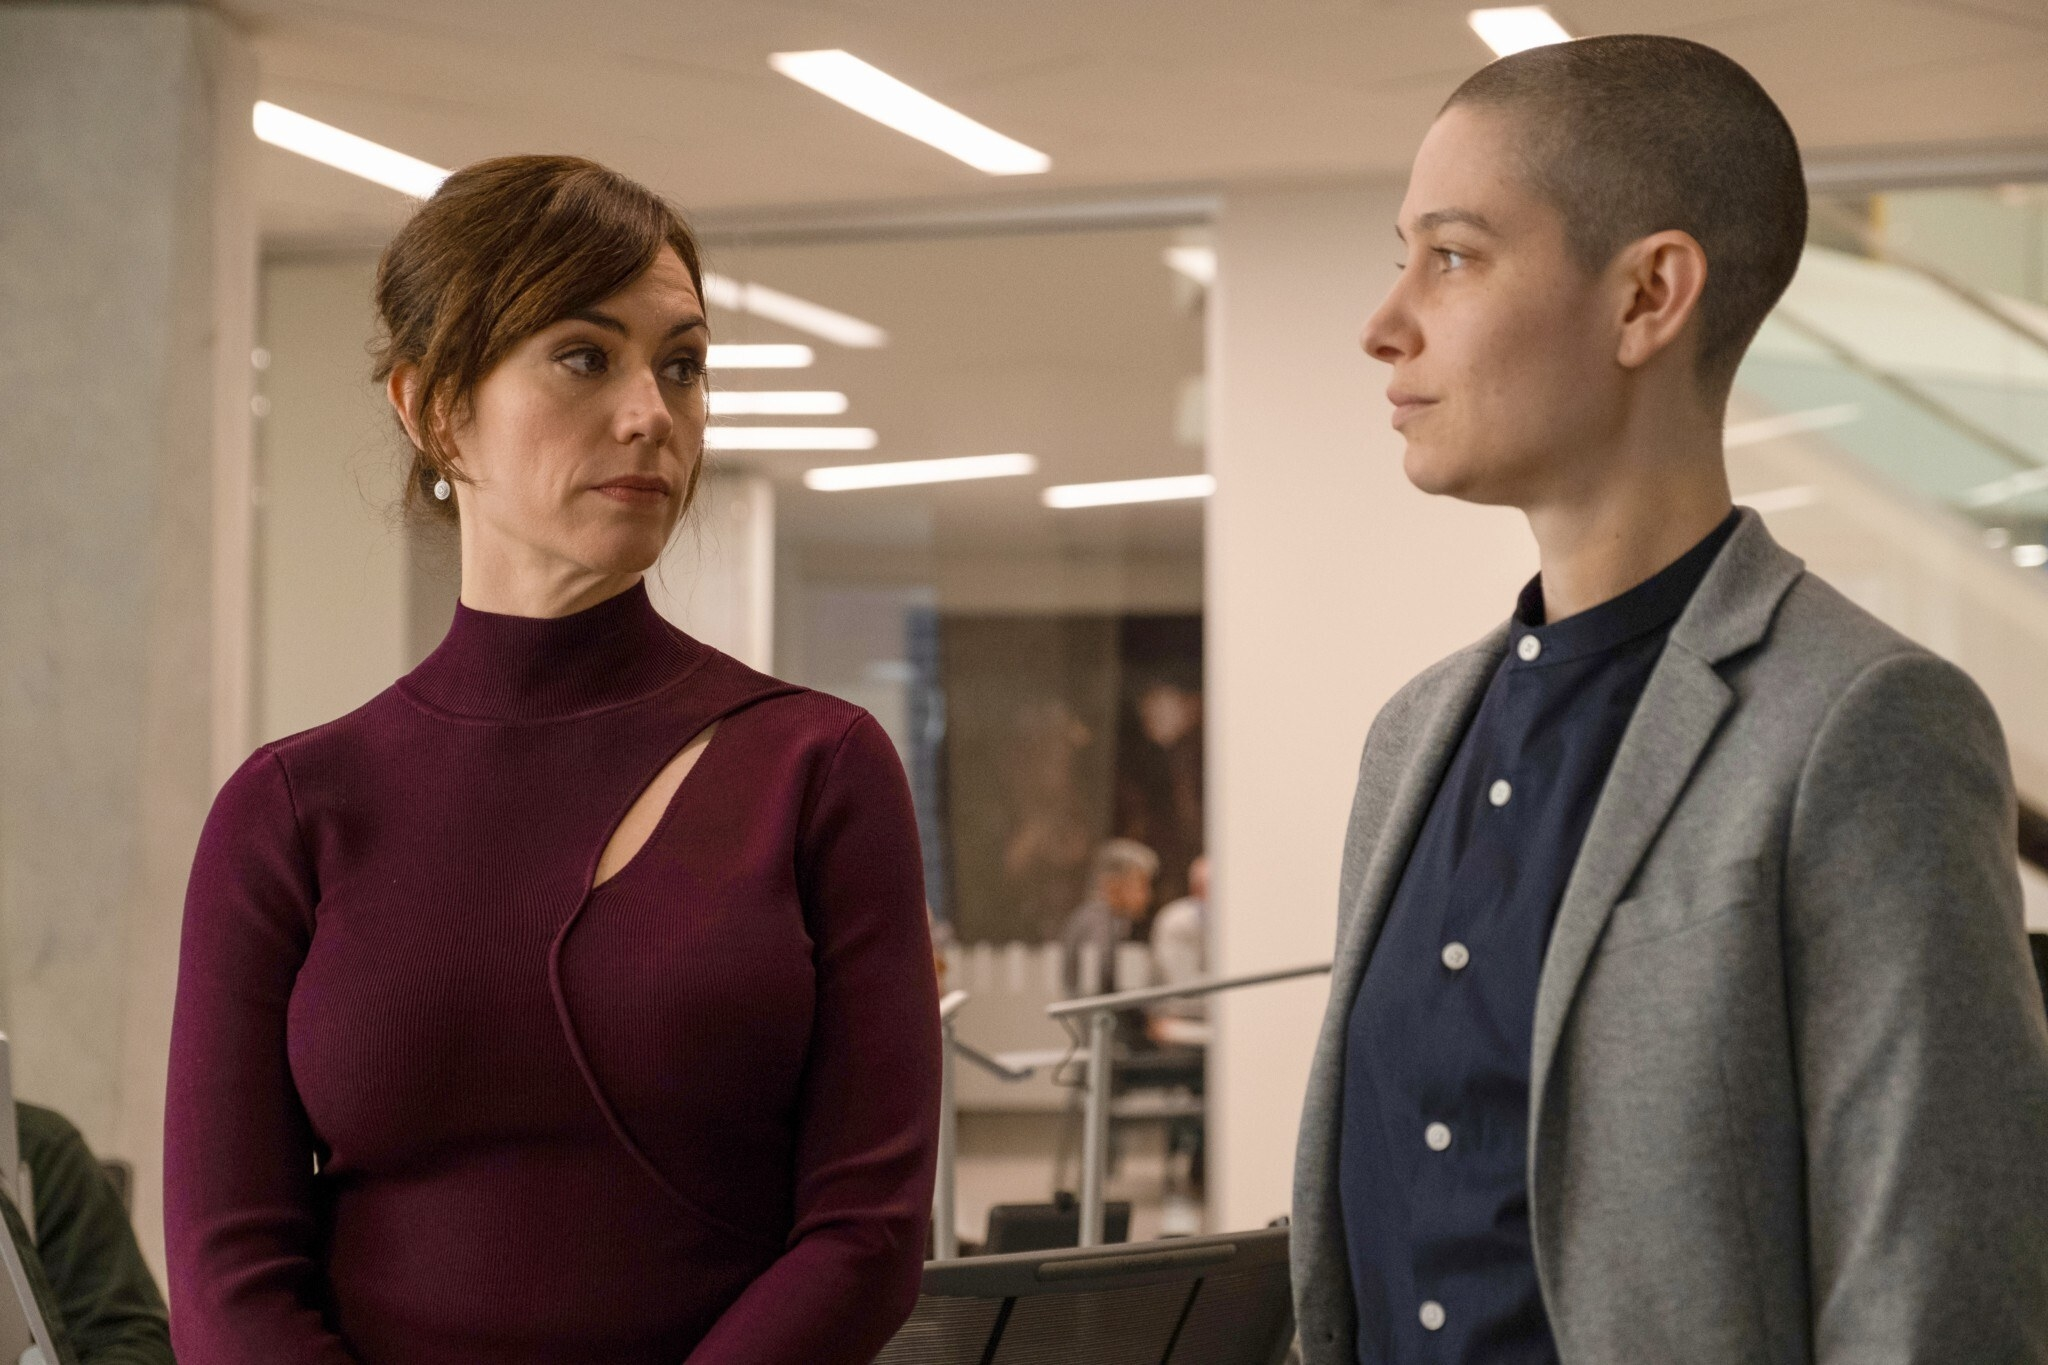 Maggie Siff and Asia Kate Dillon look at each other in an office